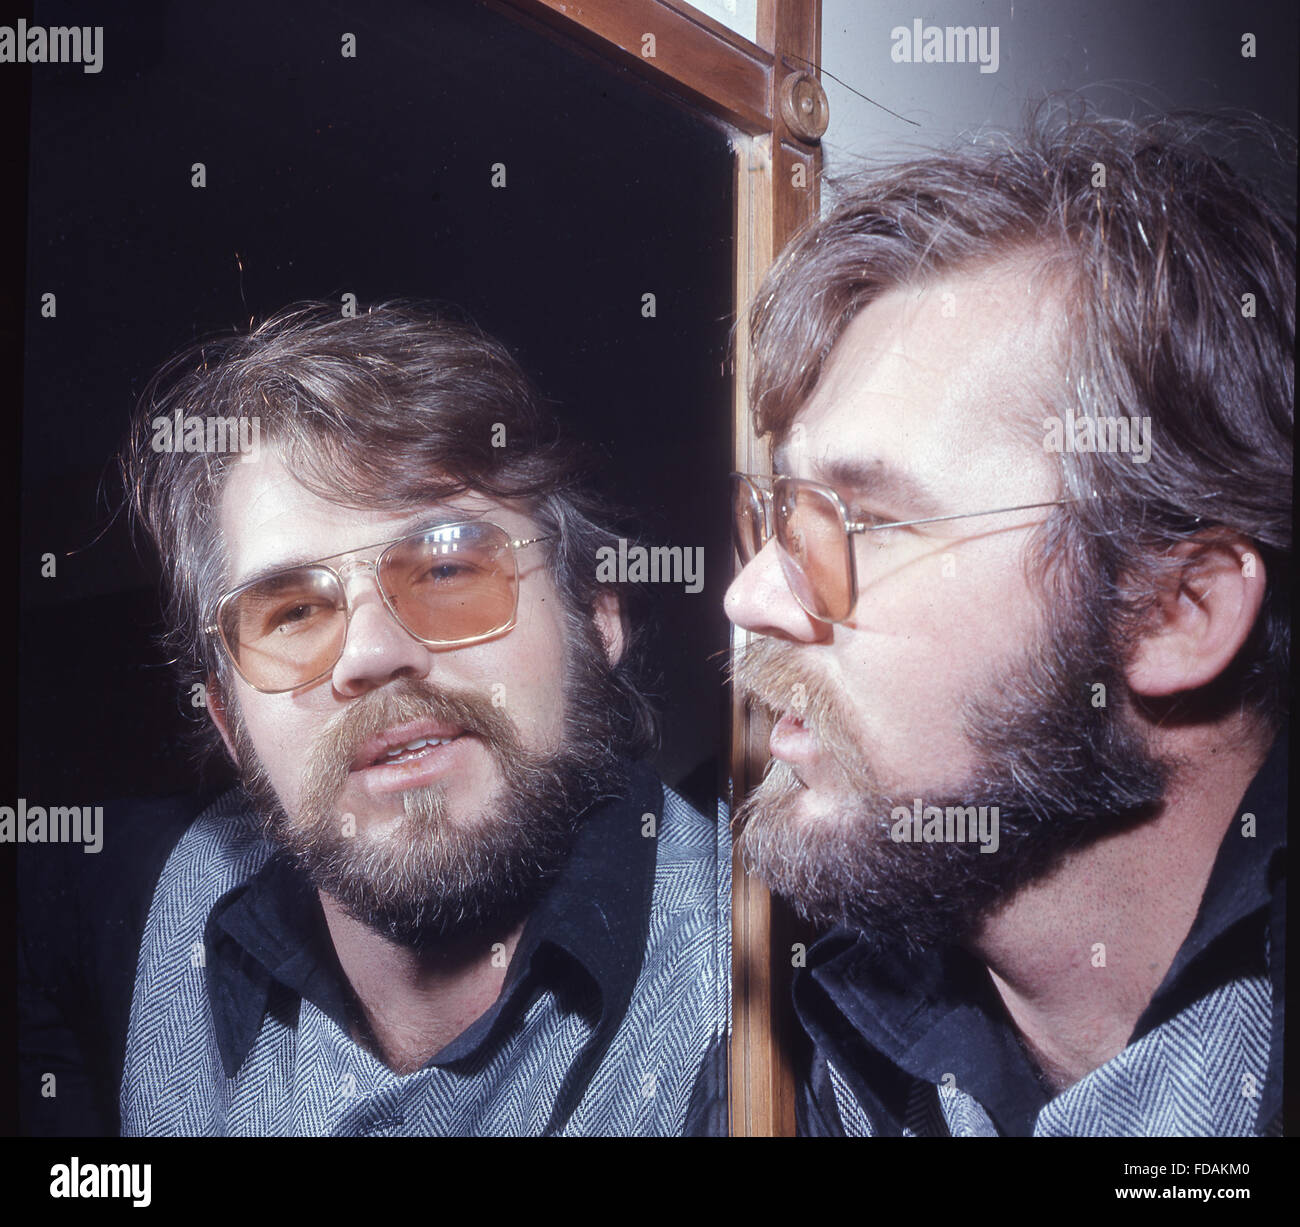 Kenny Rogers Us Singer About 1975 Stock Photo Alamy